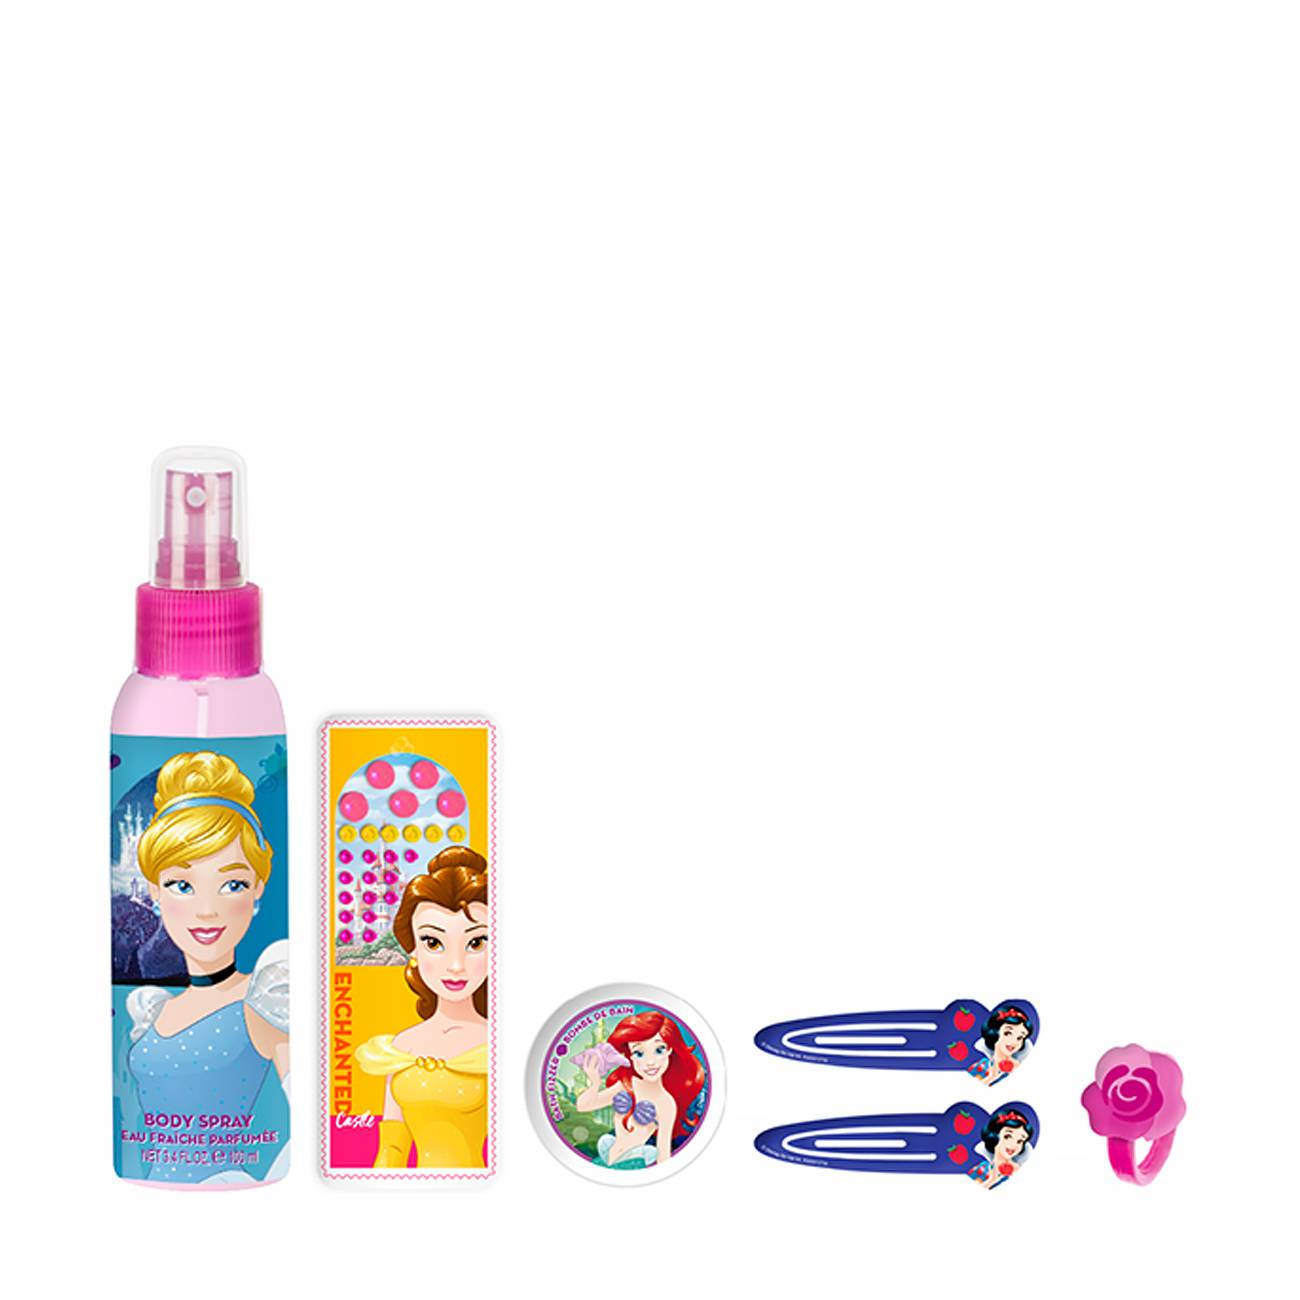 PRINCESS SET 120ml imagine produs